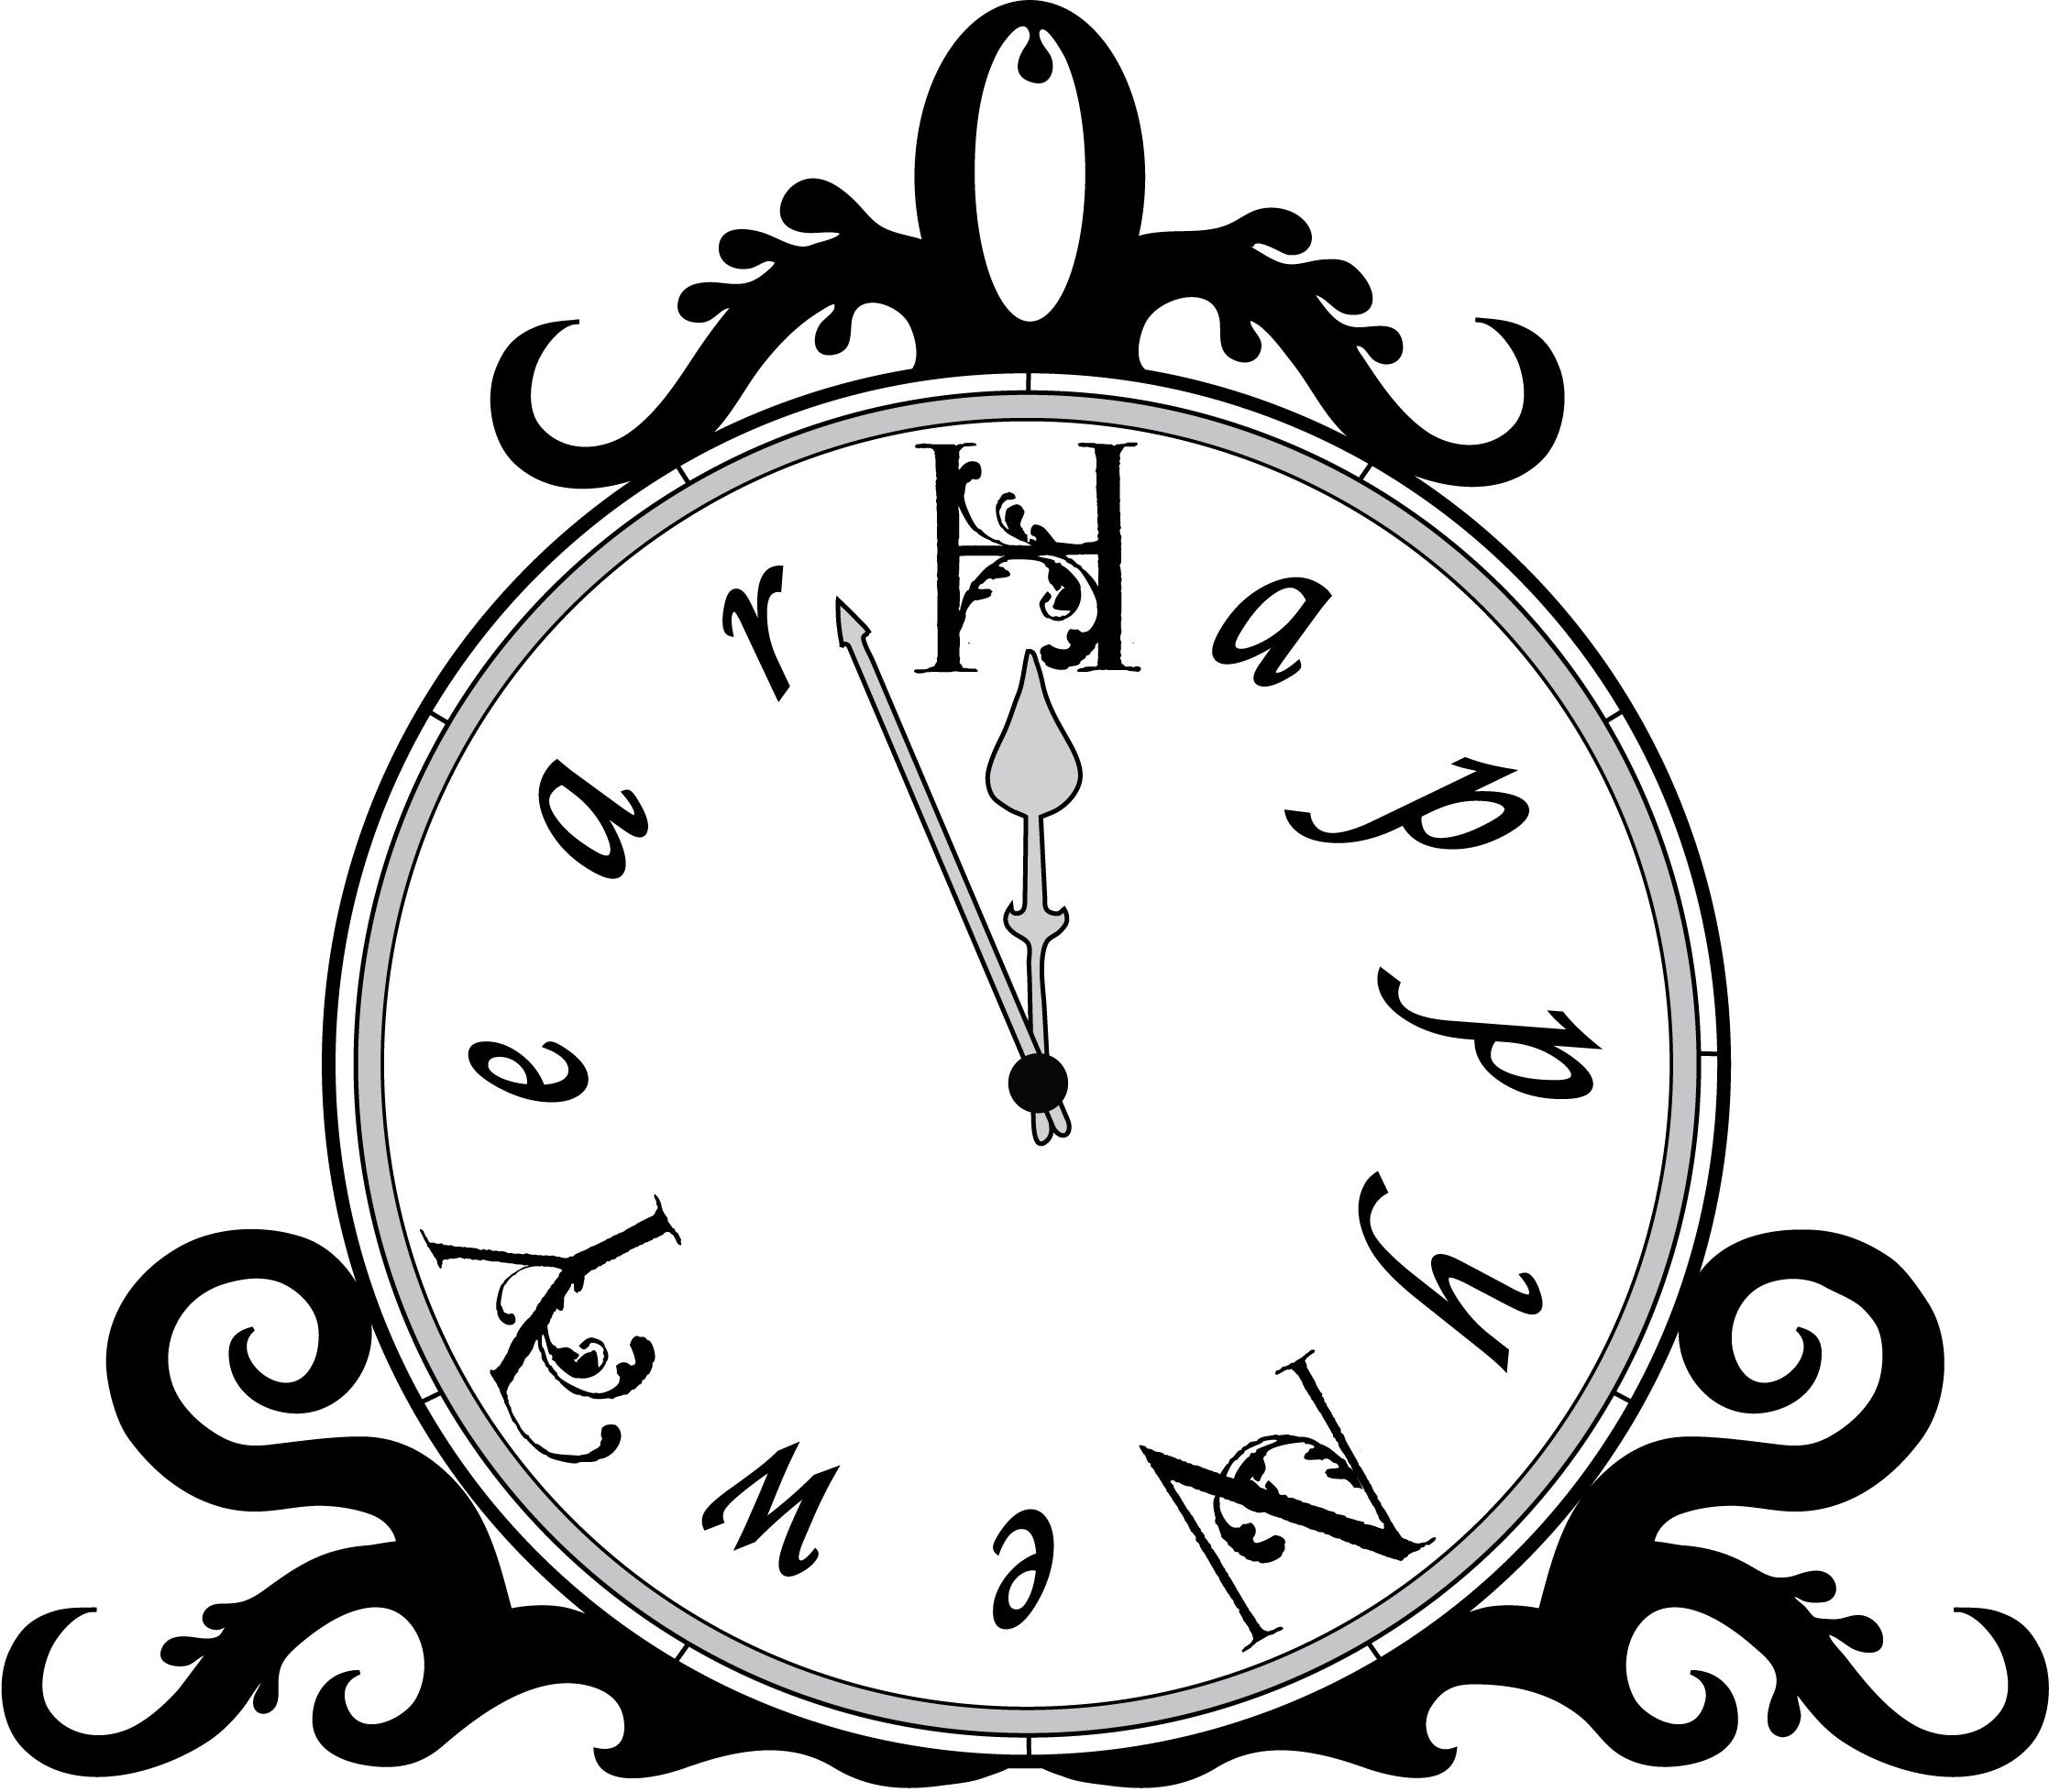 Waiting For New Year 2019 New Year Clock Happy New Year 2019 New Year Clipart